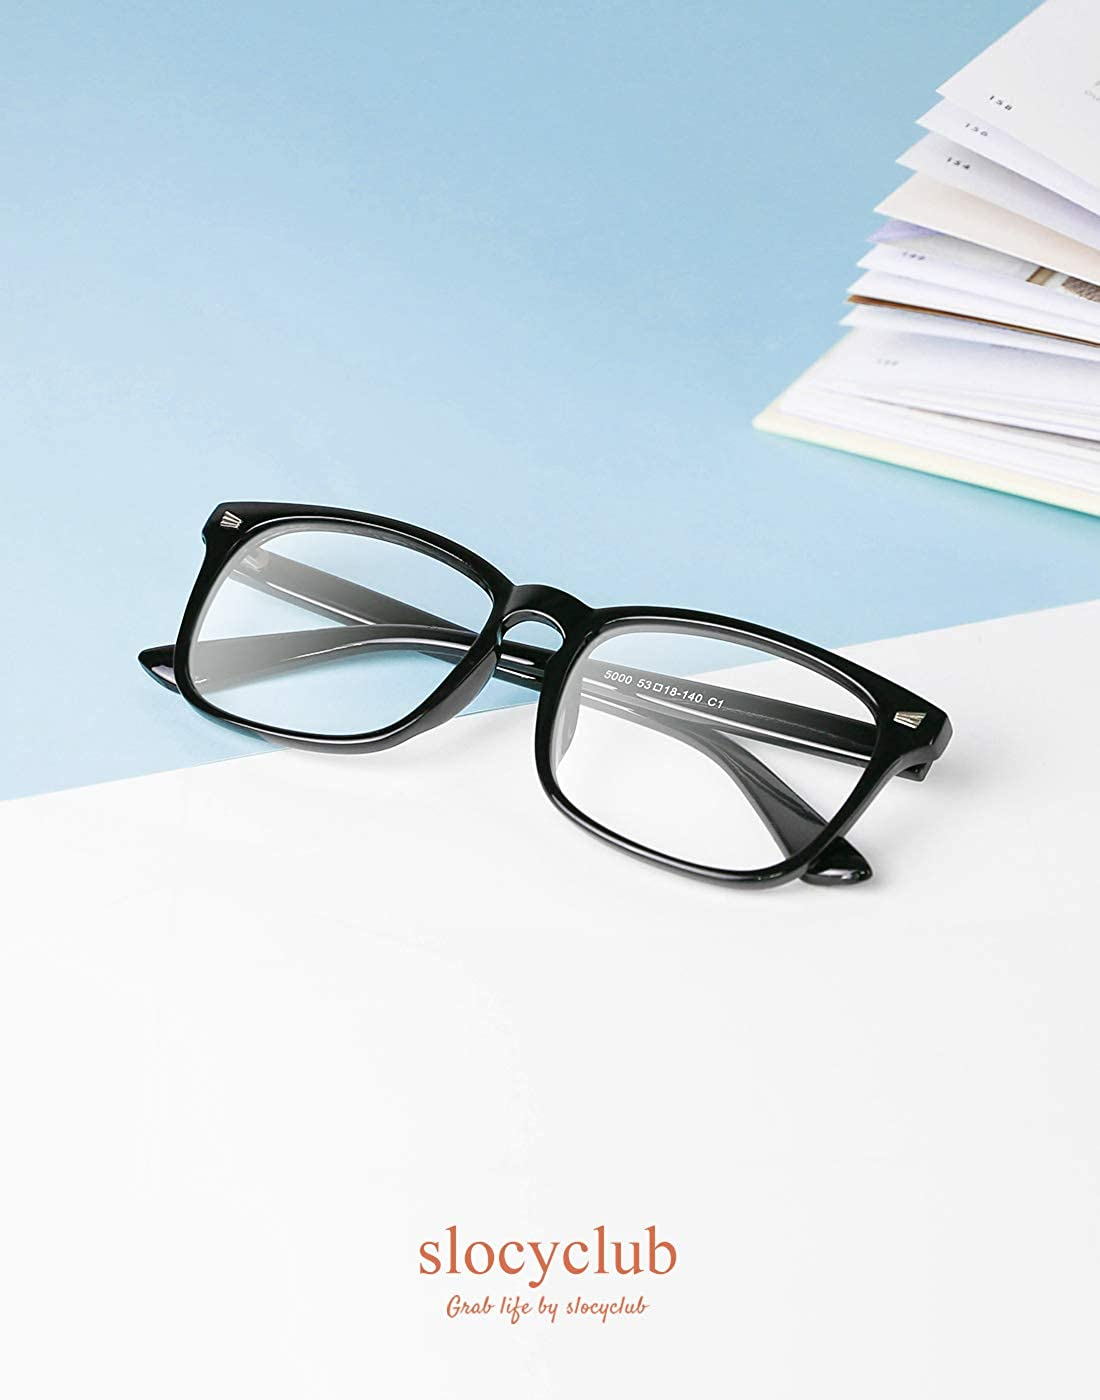 ed08934fd0e Amazon.com  Slocyclub Blue light Blocking Glasses Vintage Nerd Square  Keyhole Design Eyeglasses Frame for Women Men  Clothing